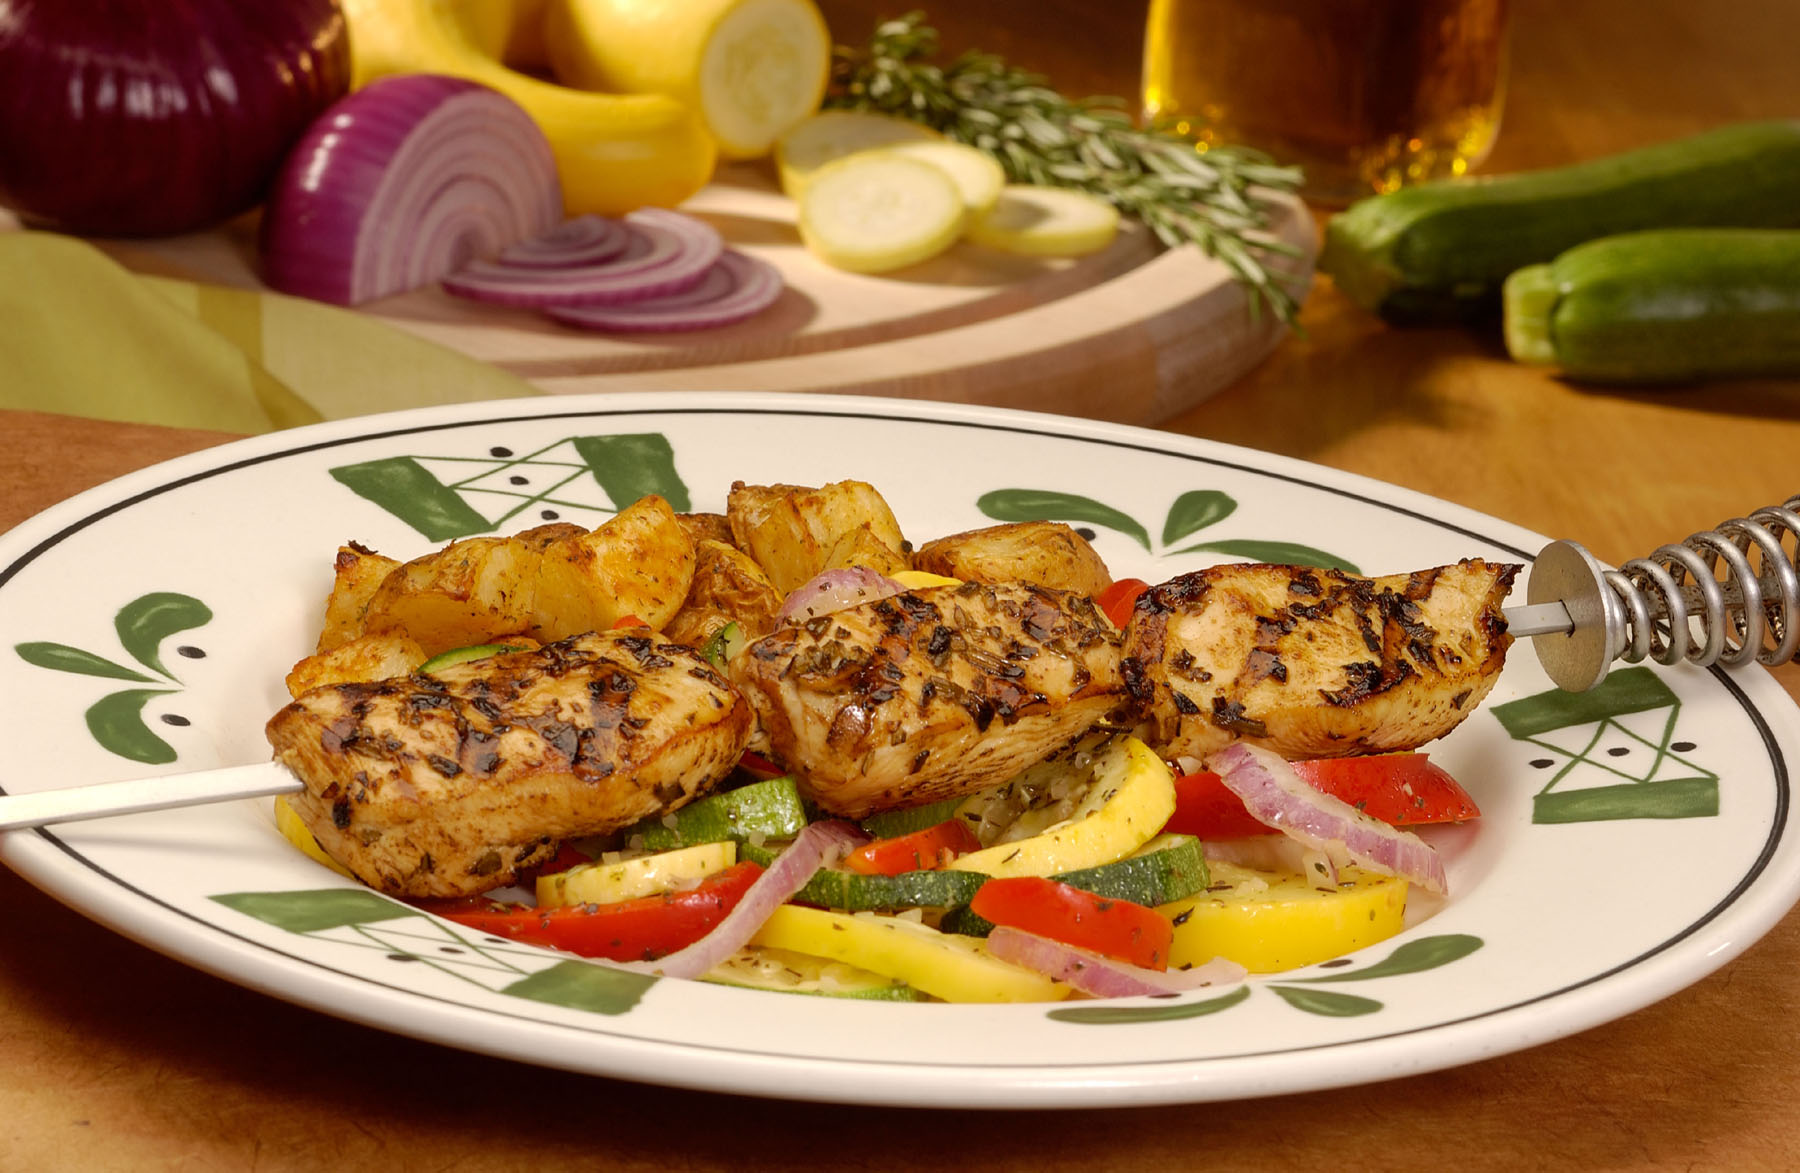 Olive Garden Menu Pdf: Crusted, Grilled And Smoked: Olive Garden's New Menu Items